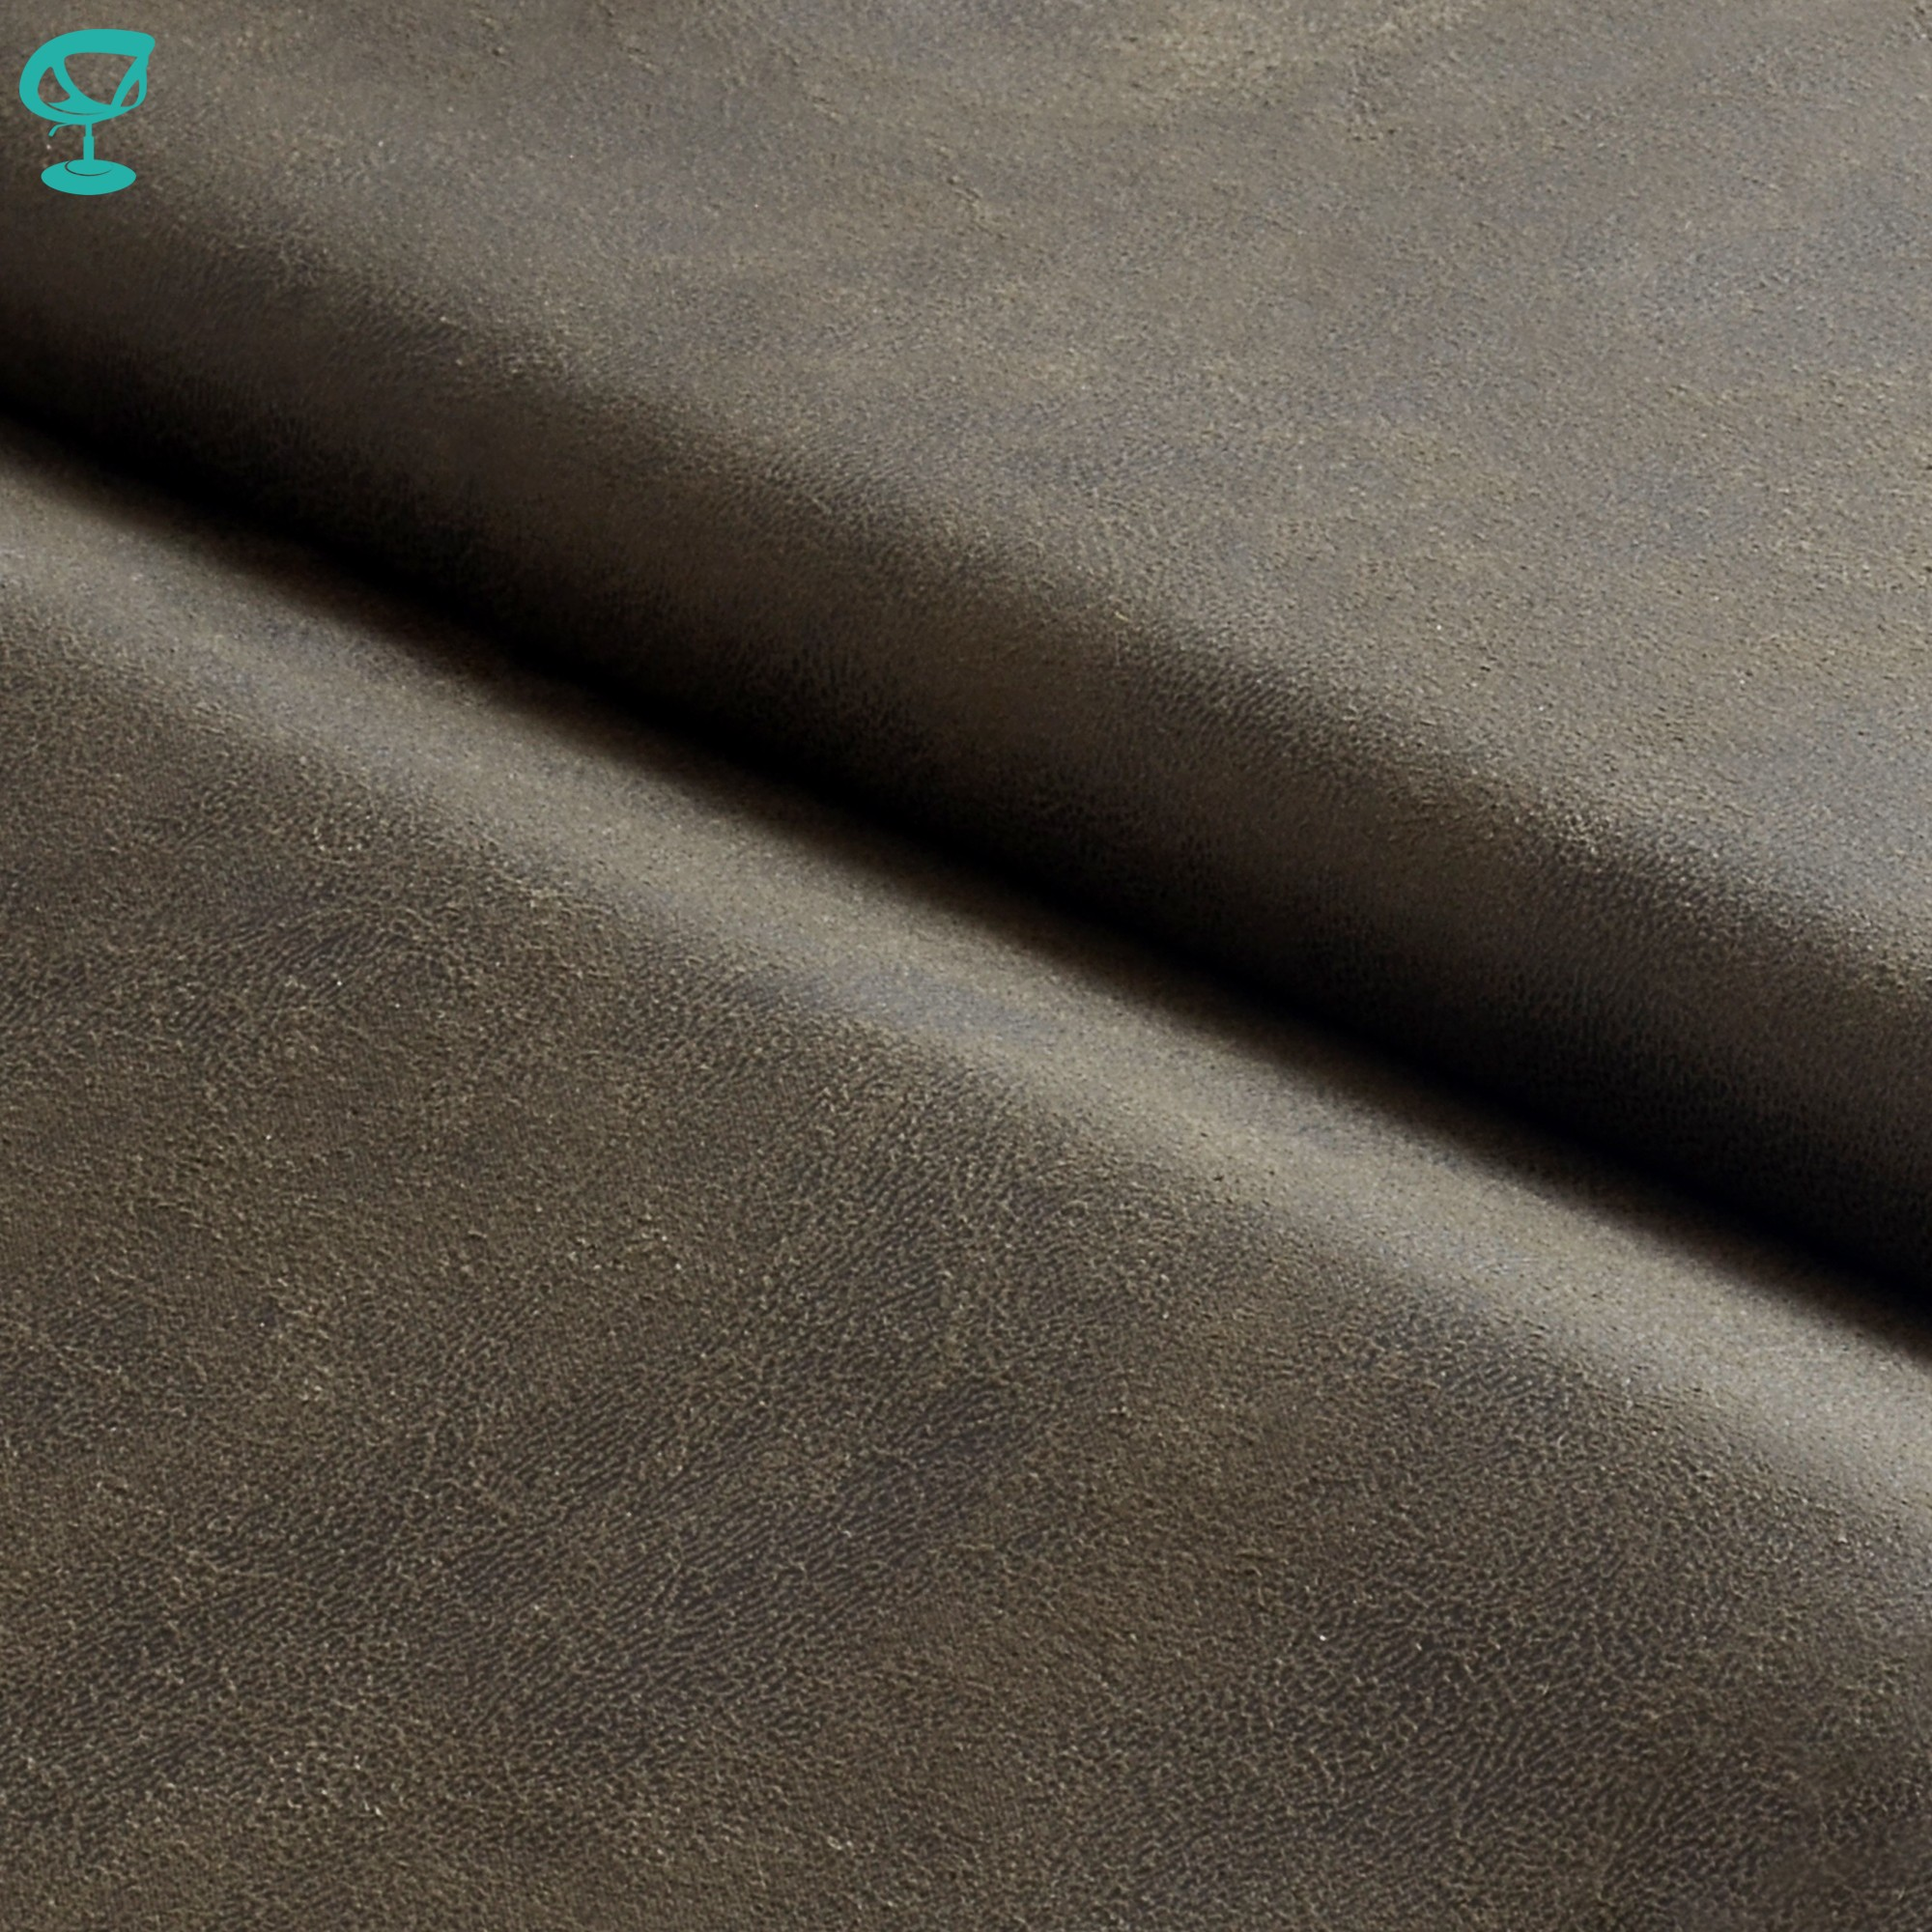 95650 Barneo PK970-8 Fabric Furniture Nubuck Polyester обивочный Material For мебельного Production Necking Chairs Sofas